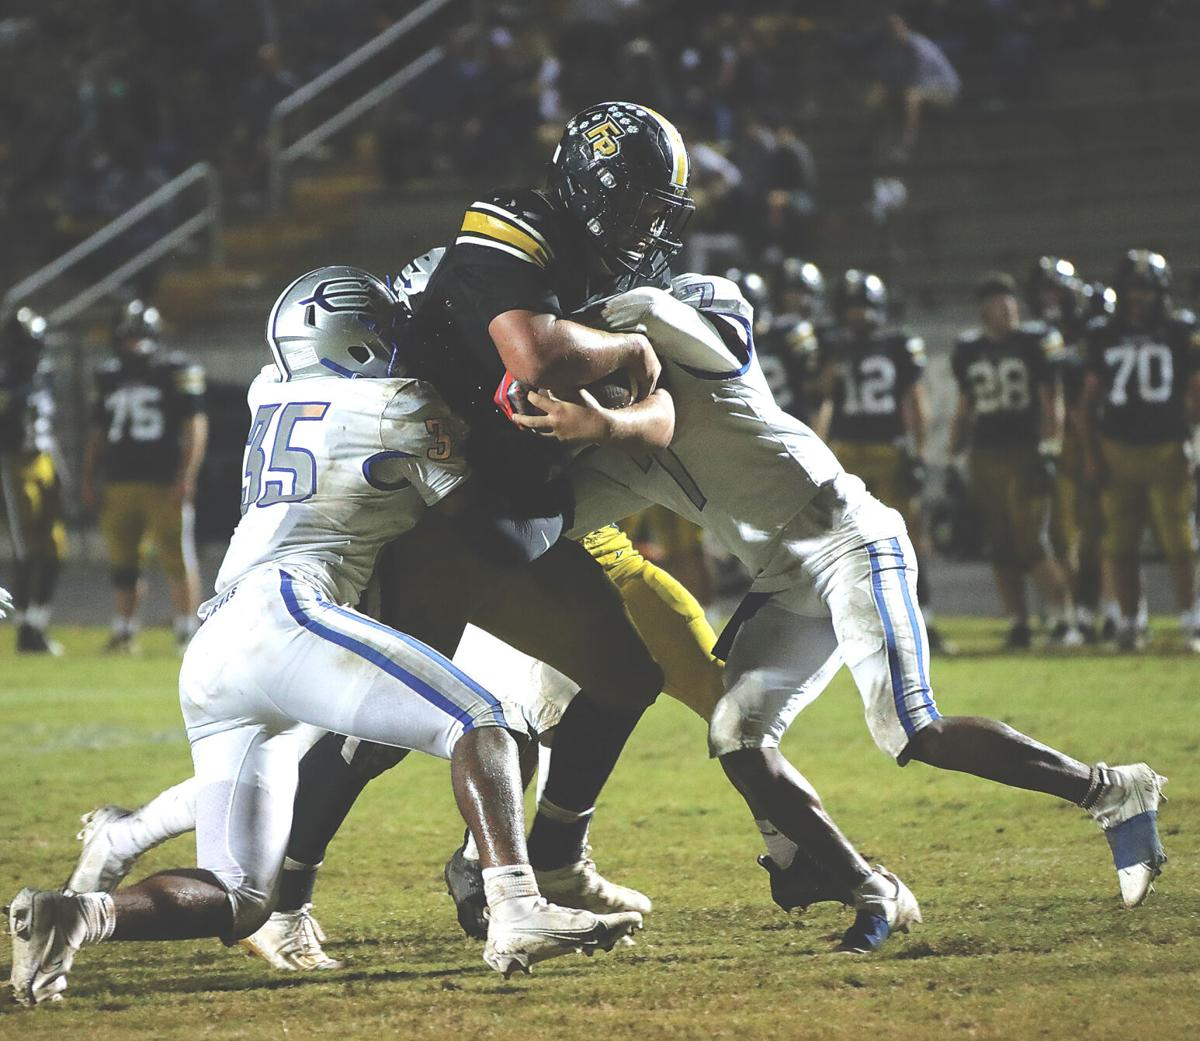 Fort Payne pulls away from Etowah with late scores